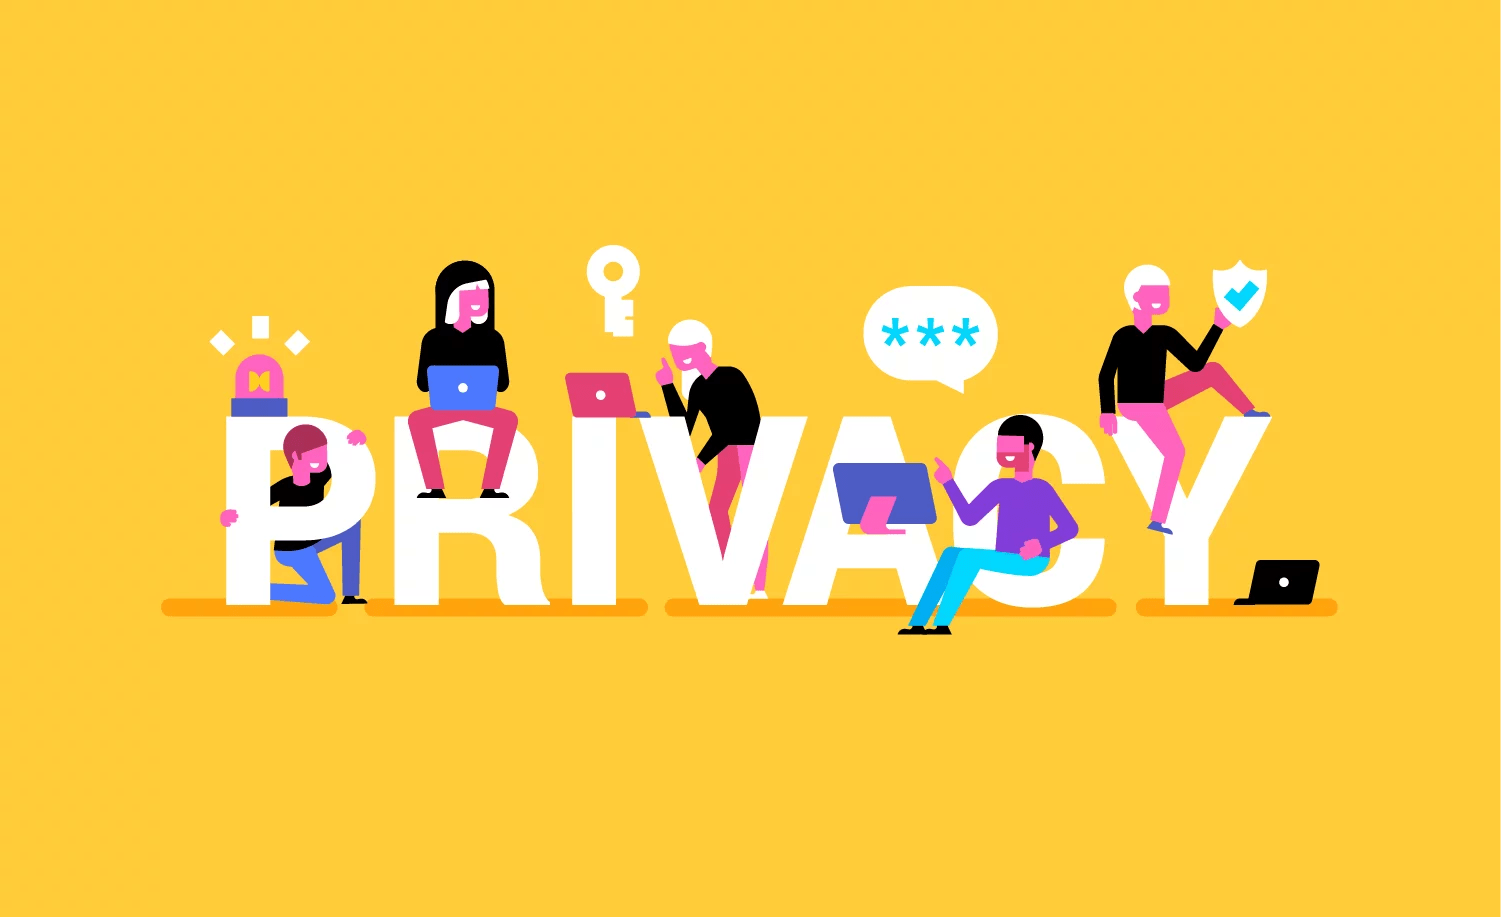 How to Ensure Your Lead Generation is California Consumer Privacy Act (CCPA) Compliant